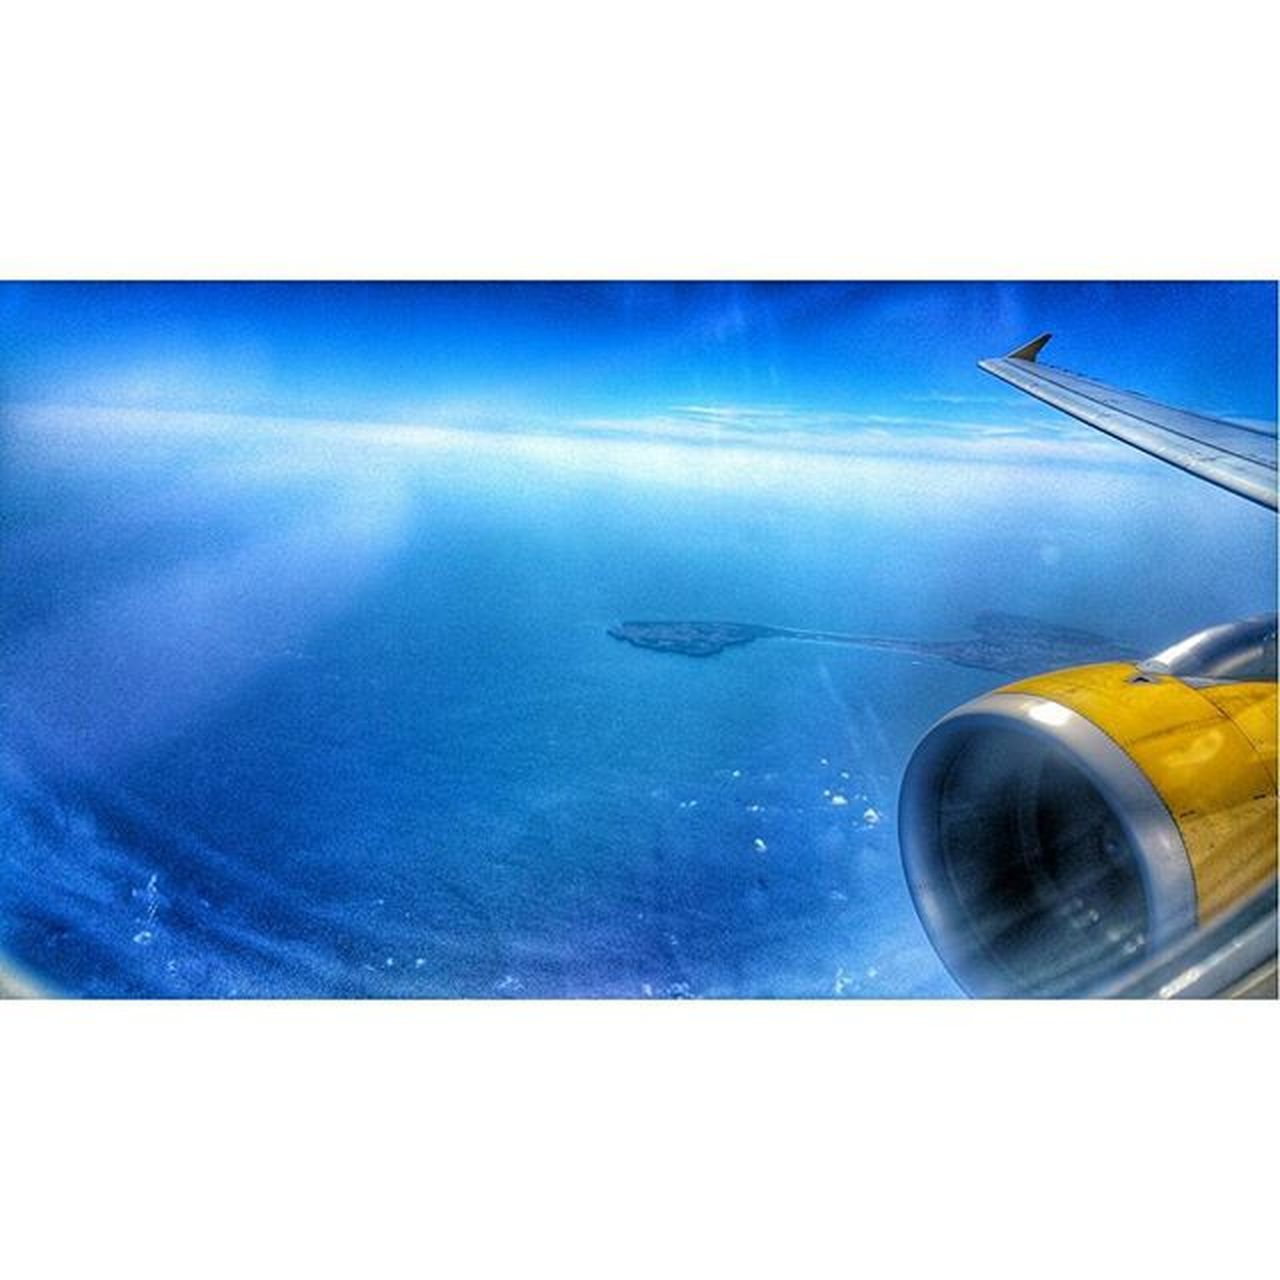 transportation, water, blue, mode of transport, no people, airplane, close-up, travel, day, outdoors, sea, airplane wing, sky